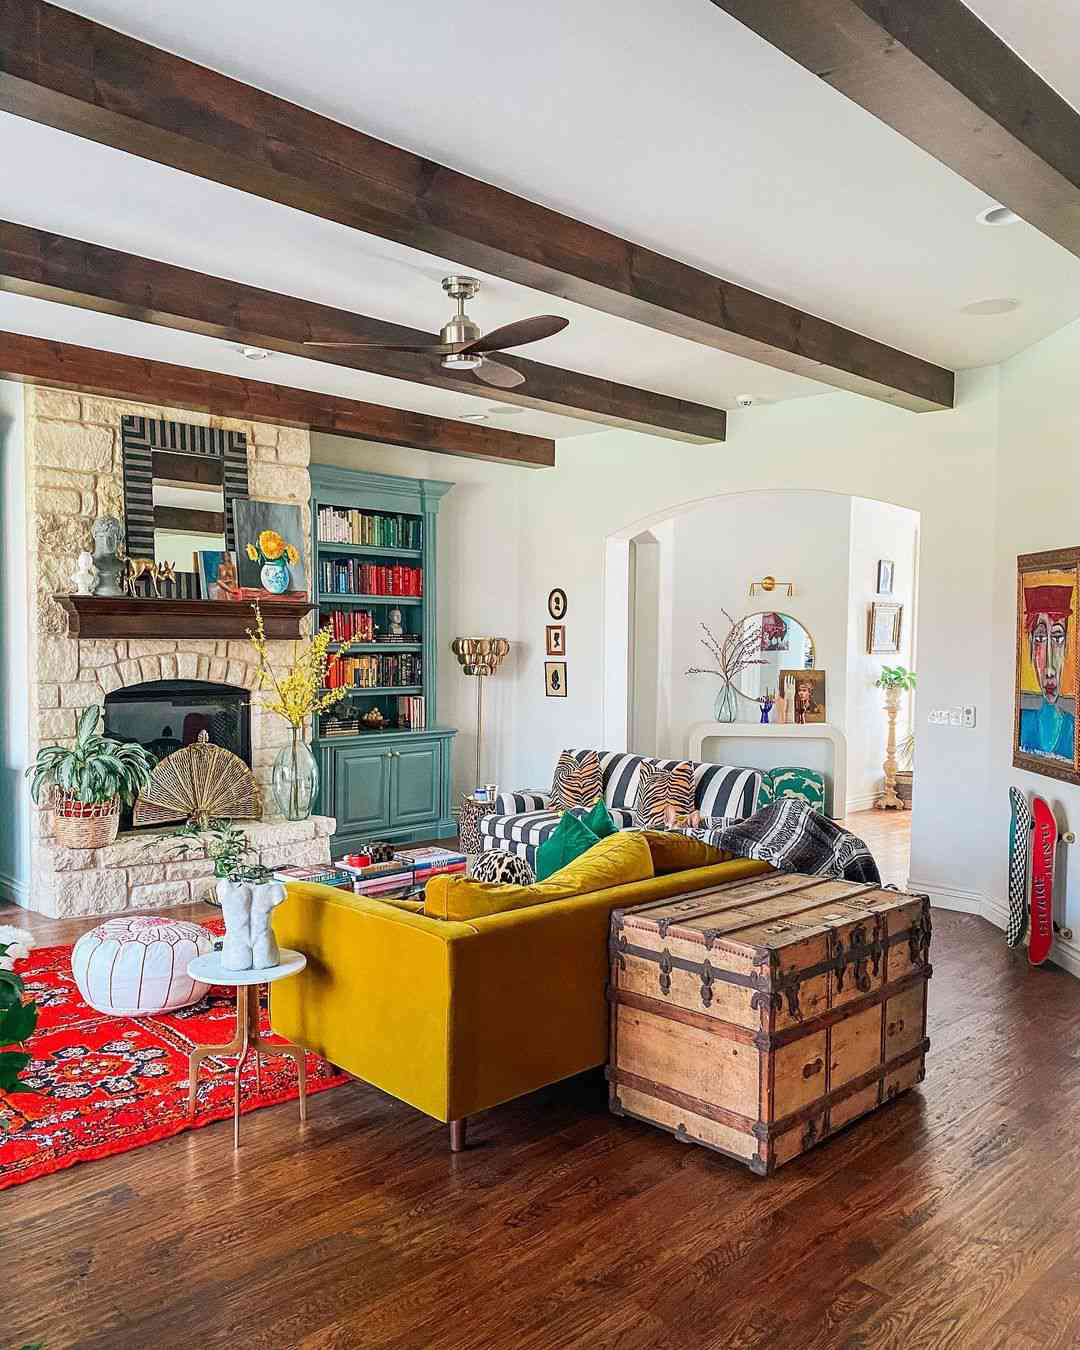 Eclectic living room with wooden beams on ceiling.